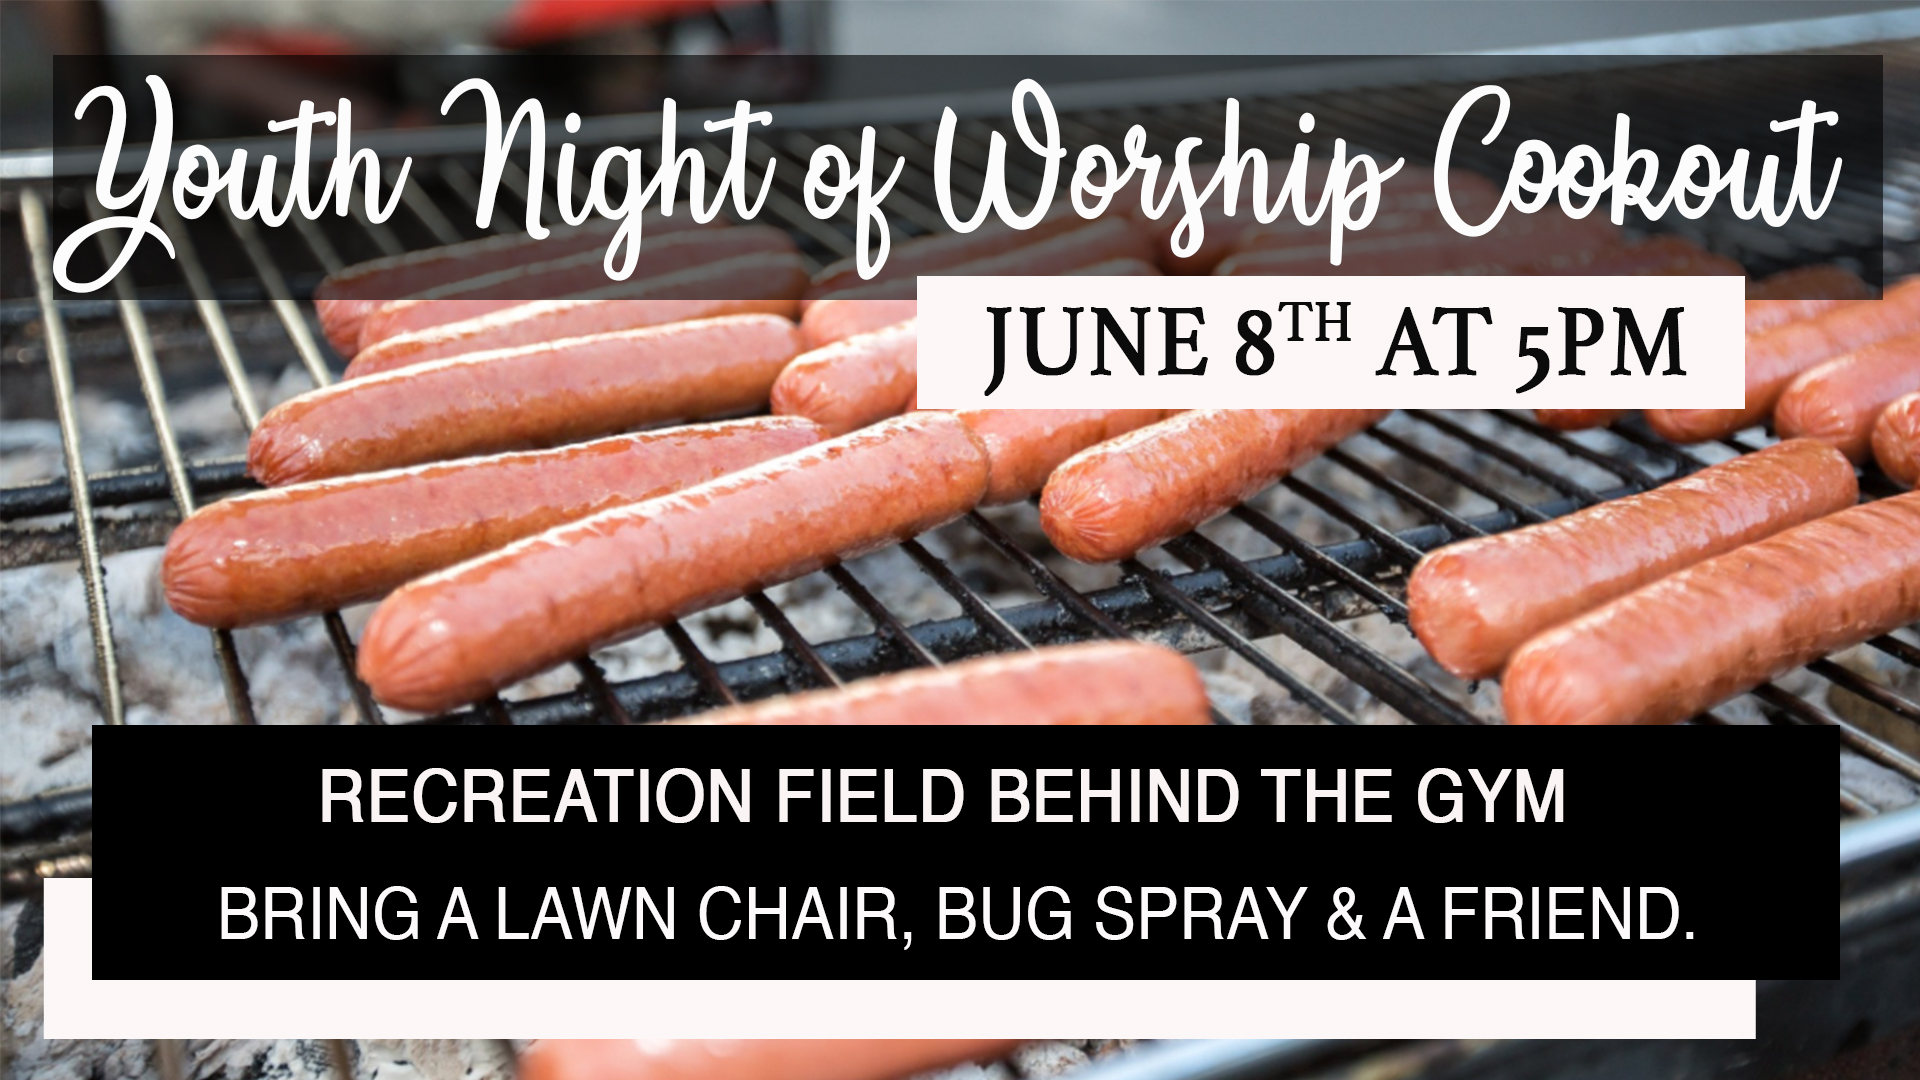 youth night of worship cookout.jpg